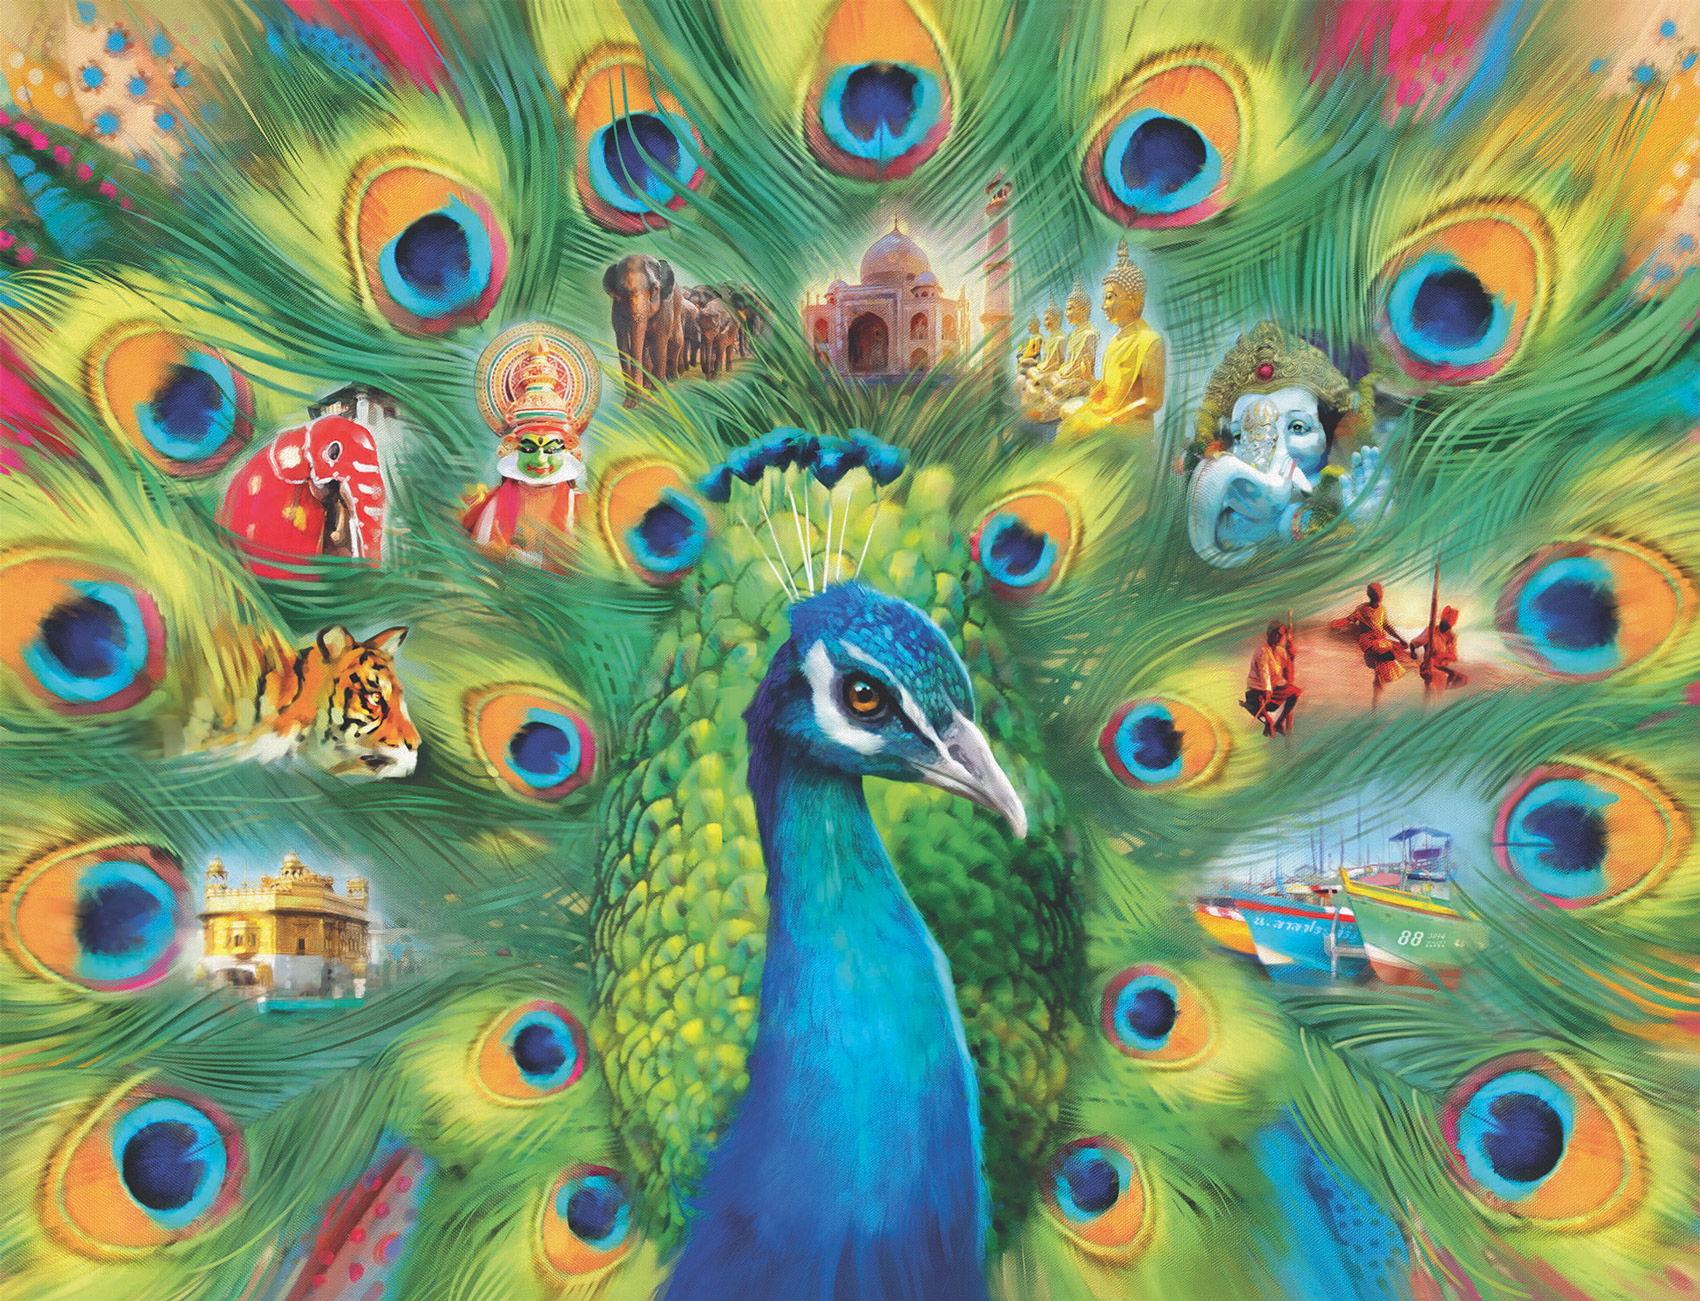 Land of the Peacock Birds Jigsaw Puzzle